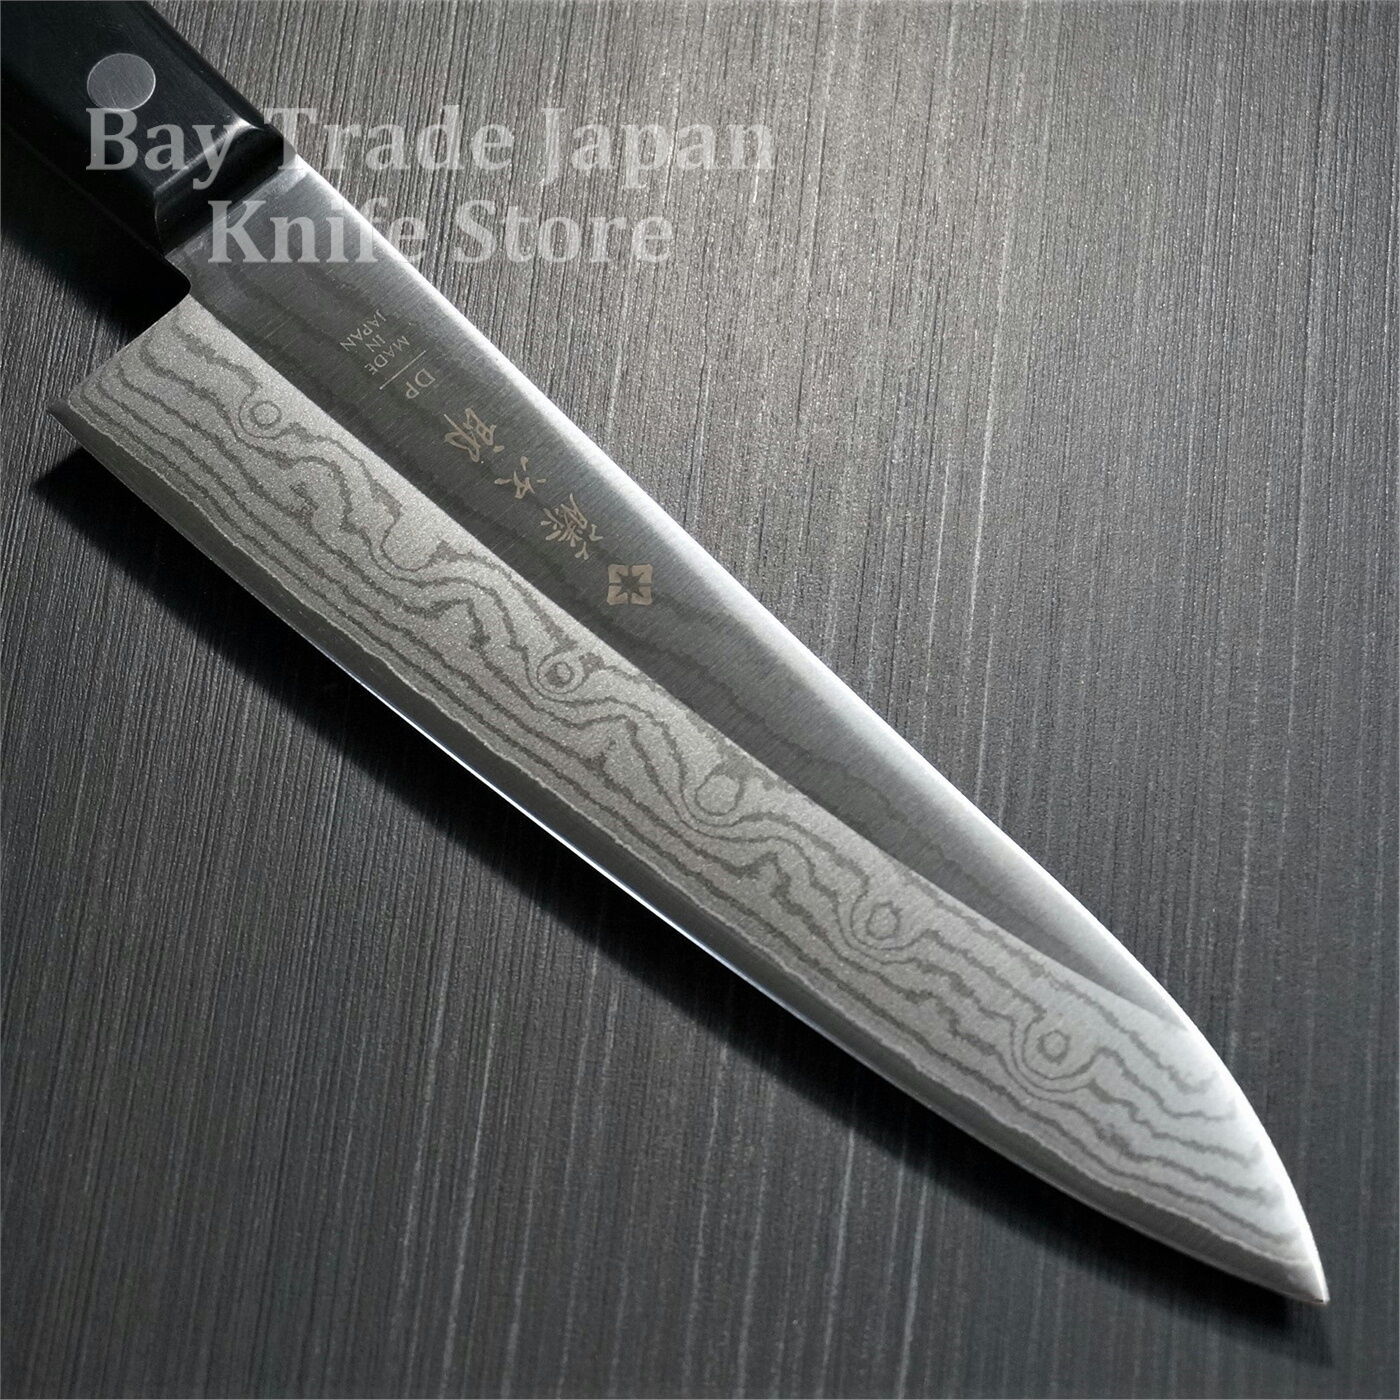 items in bay trade japan knife store store on ebay japanese tojiro dp damascus vg10 gyuto chef knife 180mm from japan f 332 kitchen